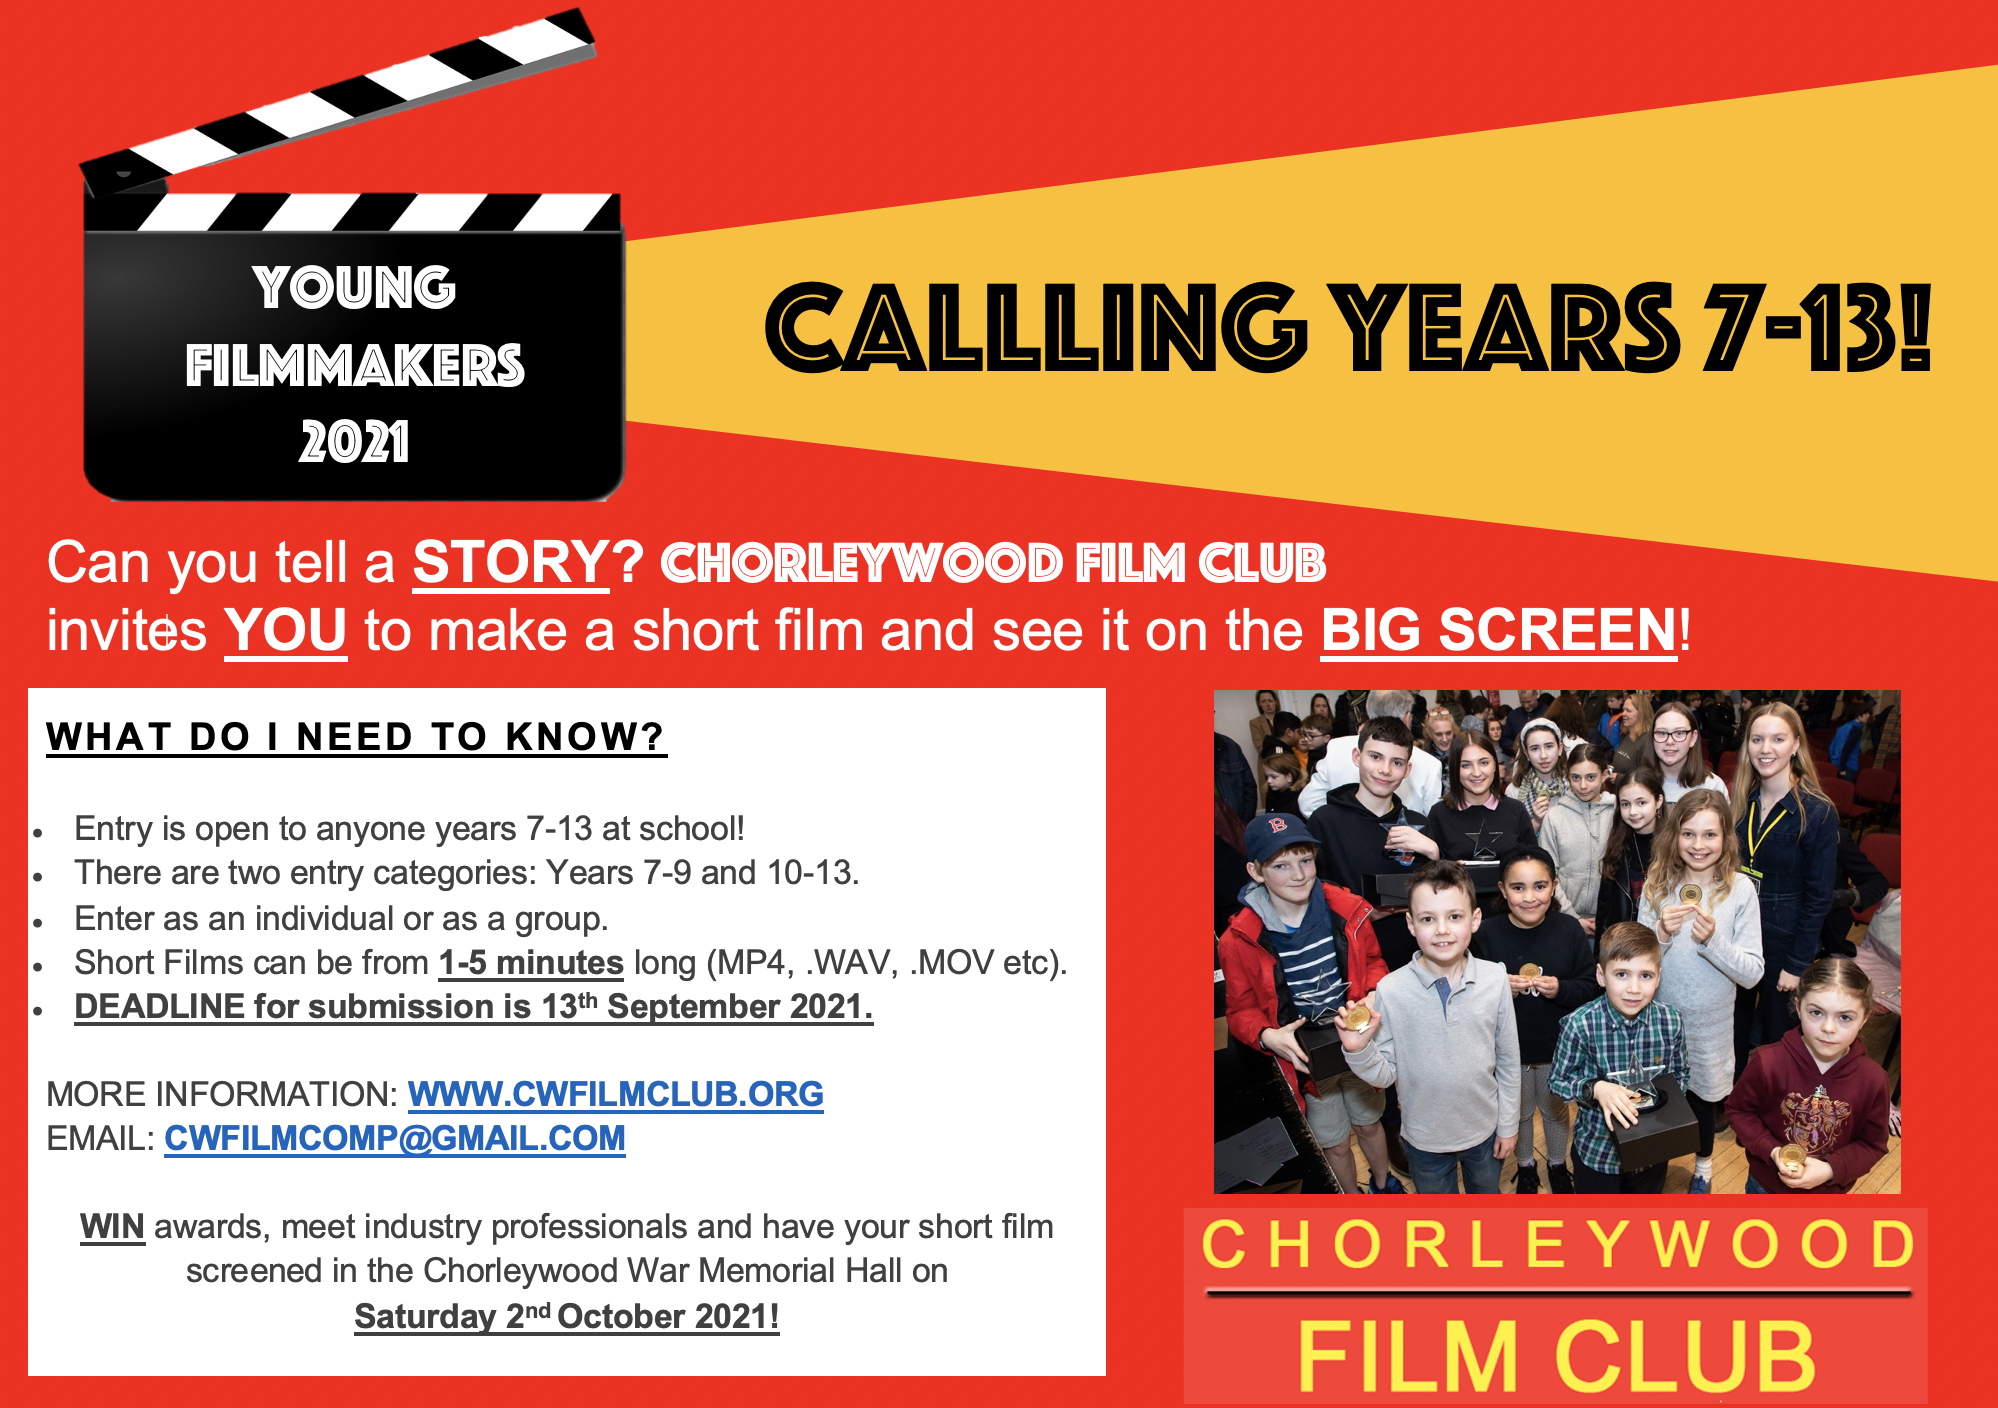 CW.filmclub.Young.Filmmakers2021